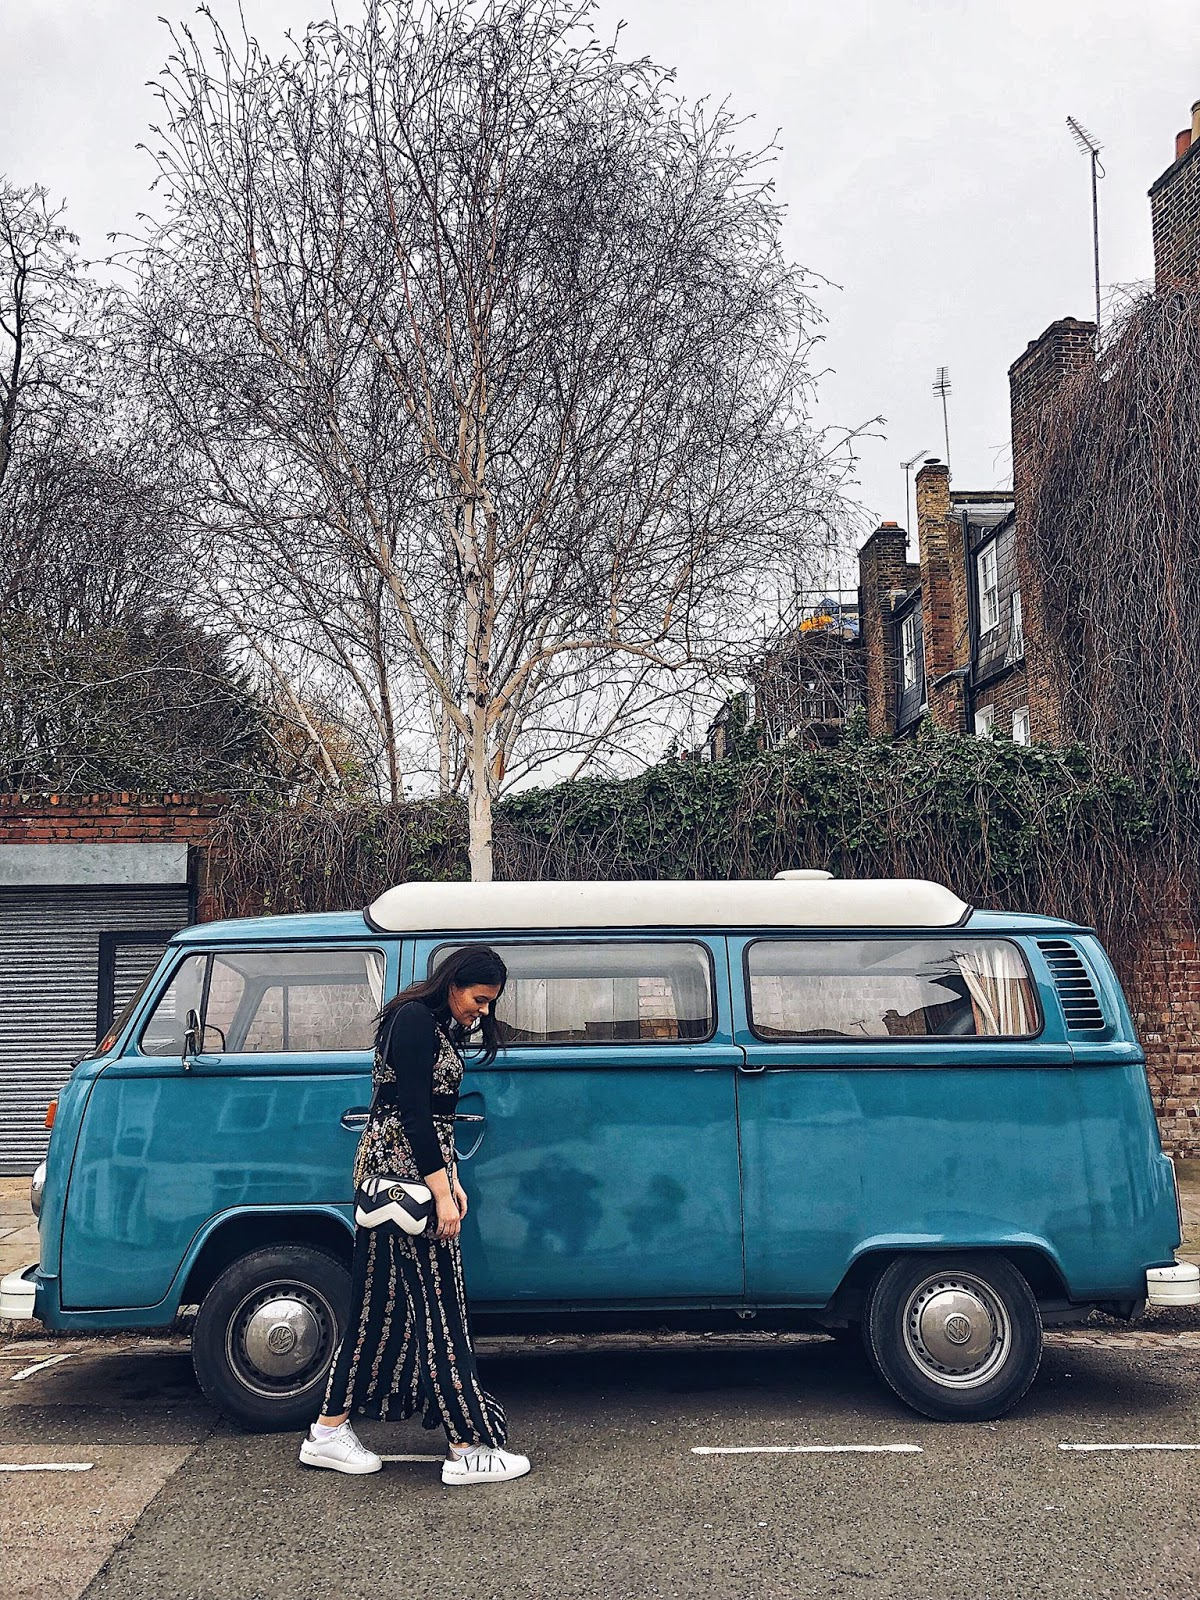 free people uk, free people maxi floral dress, free people asos, blue monday 2019, blue monday, how to tackle blue monday, how to motivate yourself when your depressed, mental health blogger uk